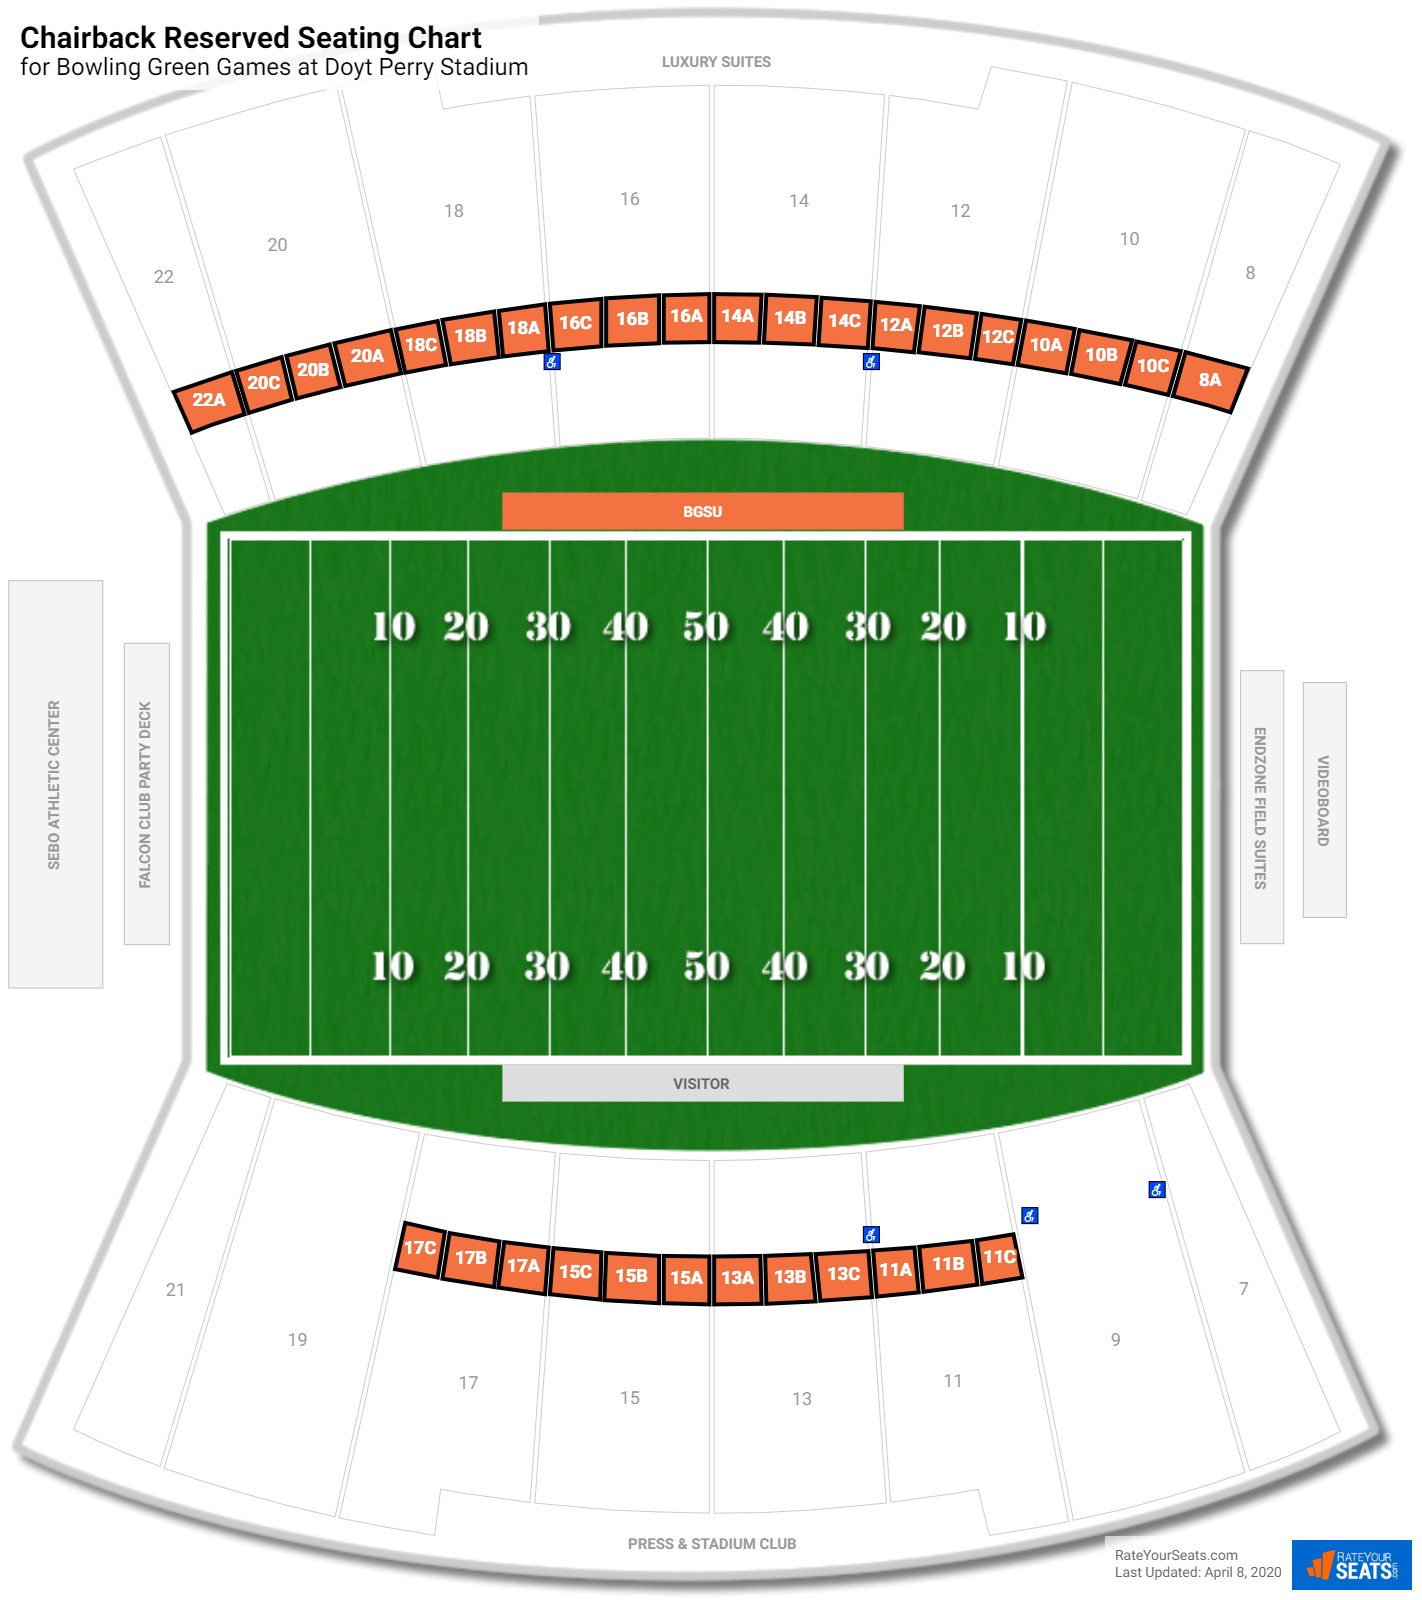 Doyt Perry Stadium Chairback Reserved seating chart